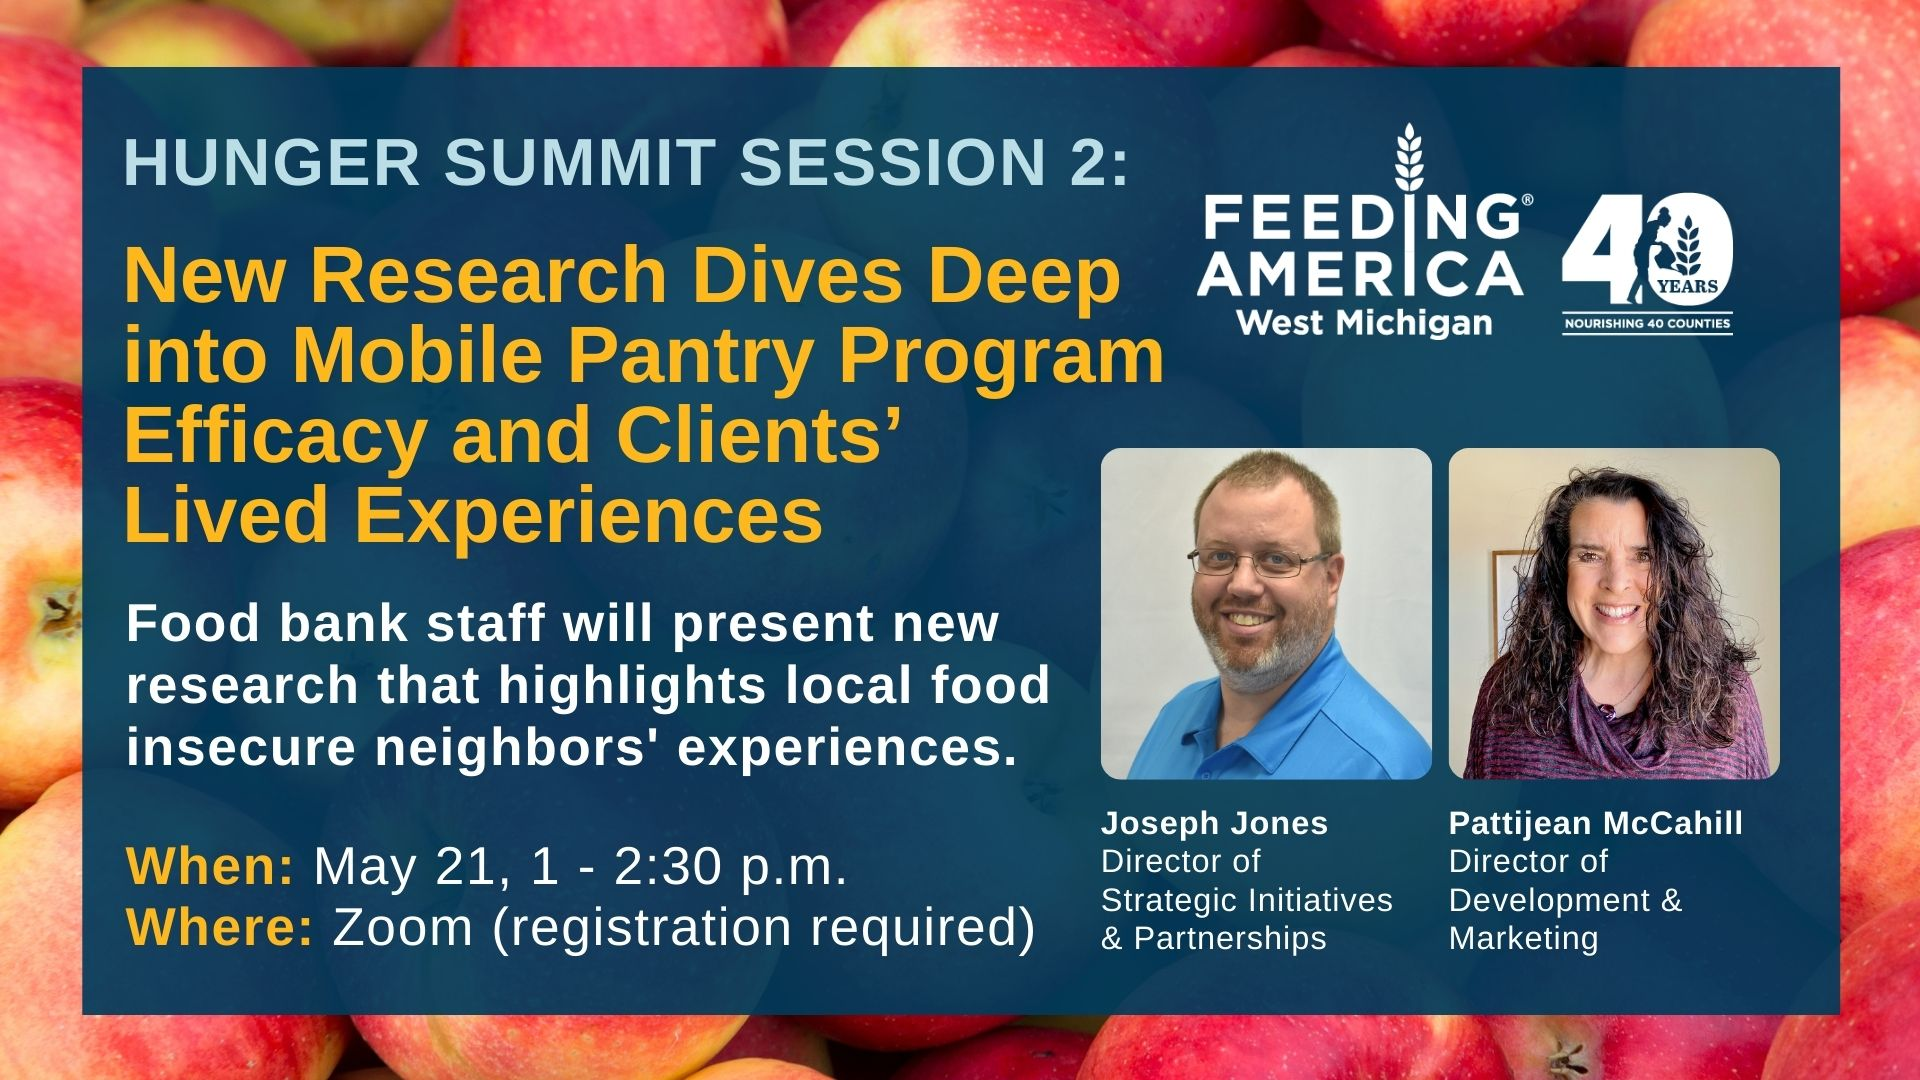 Hunger Summit Session 2 - New research dives deep into mobile pantry program efficacy and client's lived experiences - food bank staff will present new research that highlights local food insecure neighbors' experiences - May 21, 1-2:30 PM on Zoom (registration required)